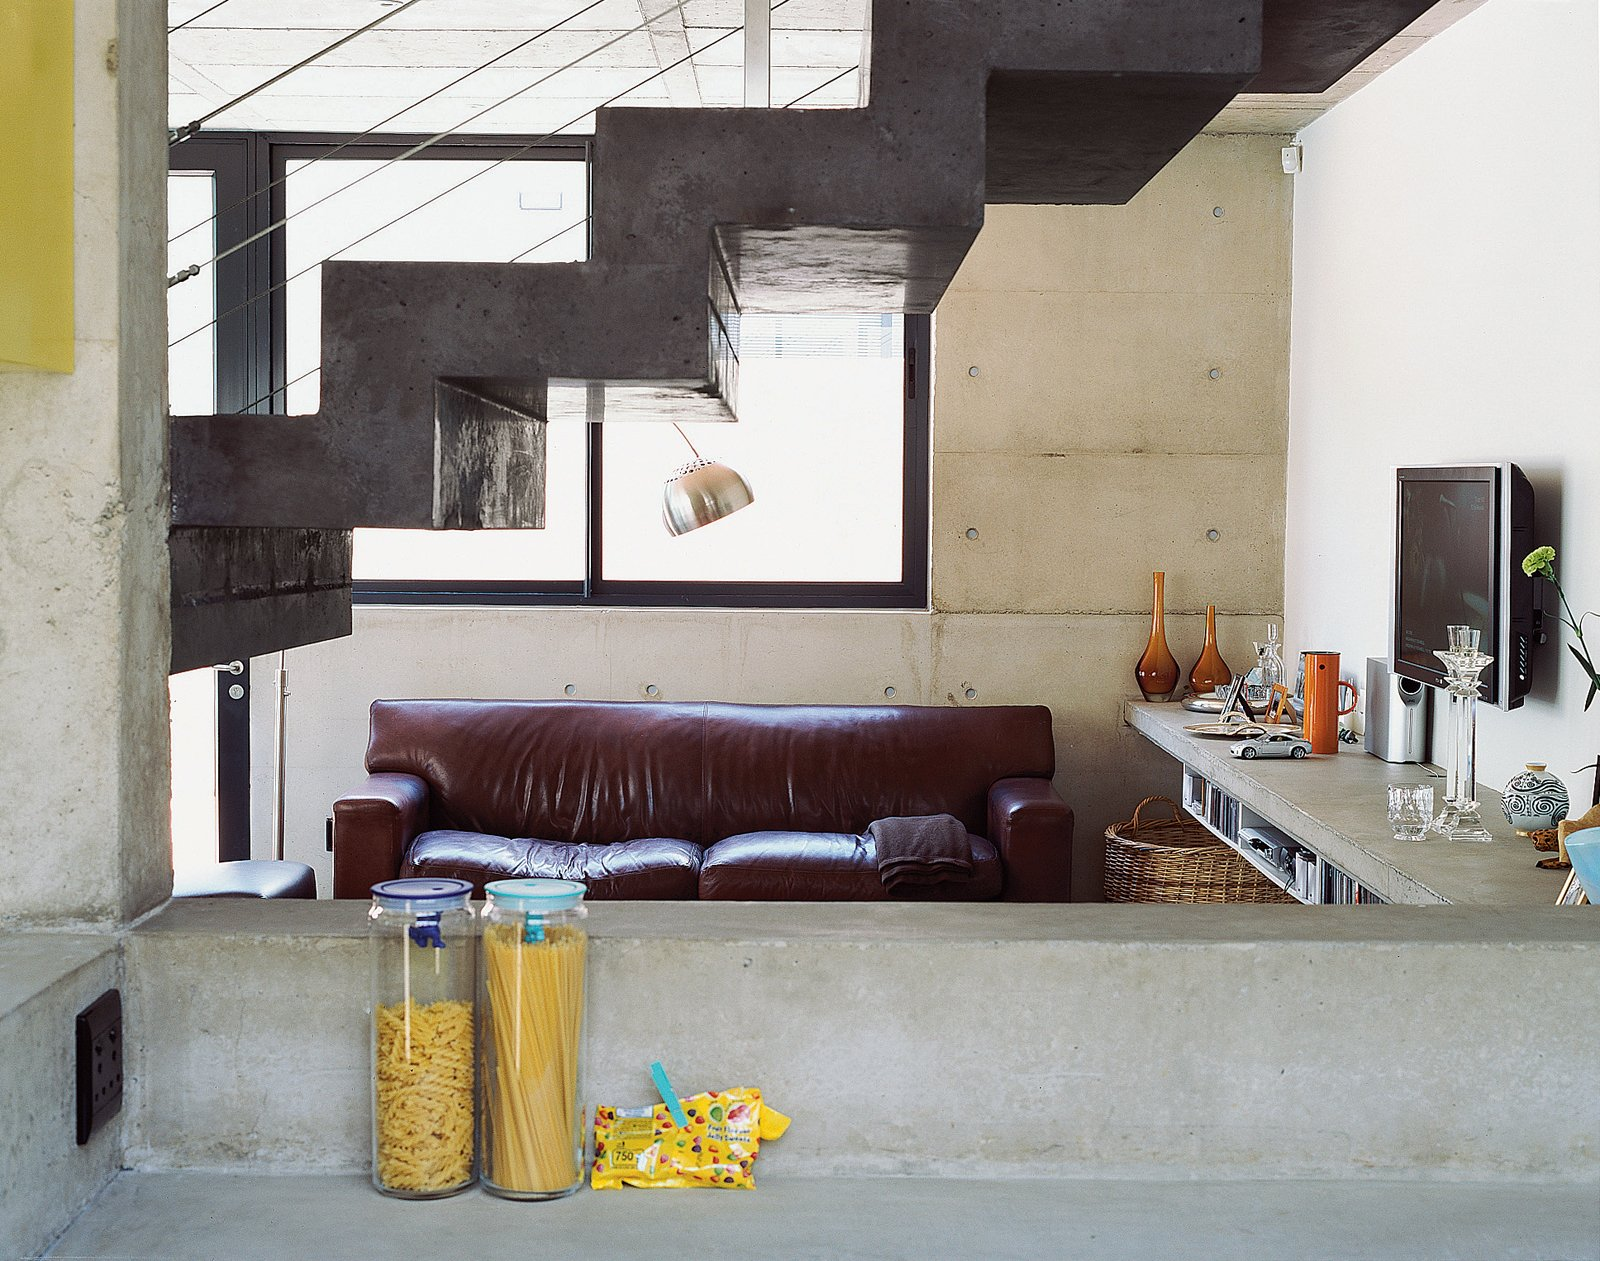 Caryn was thrilled to discover that all her personal details look spectacular when offset against the solemnity of concrete. In profile, the freestanding staircase is the most outstanding design accent.  190+ Best Modern Staircase Ideas from Katz's Cradle